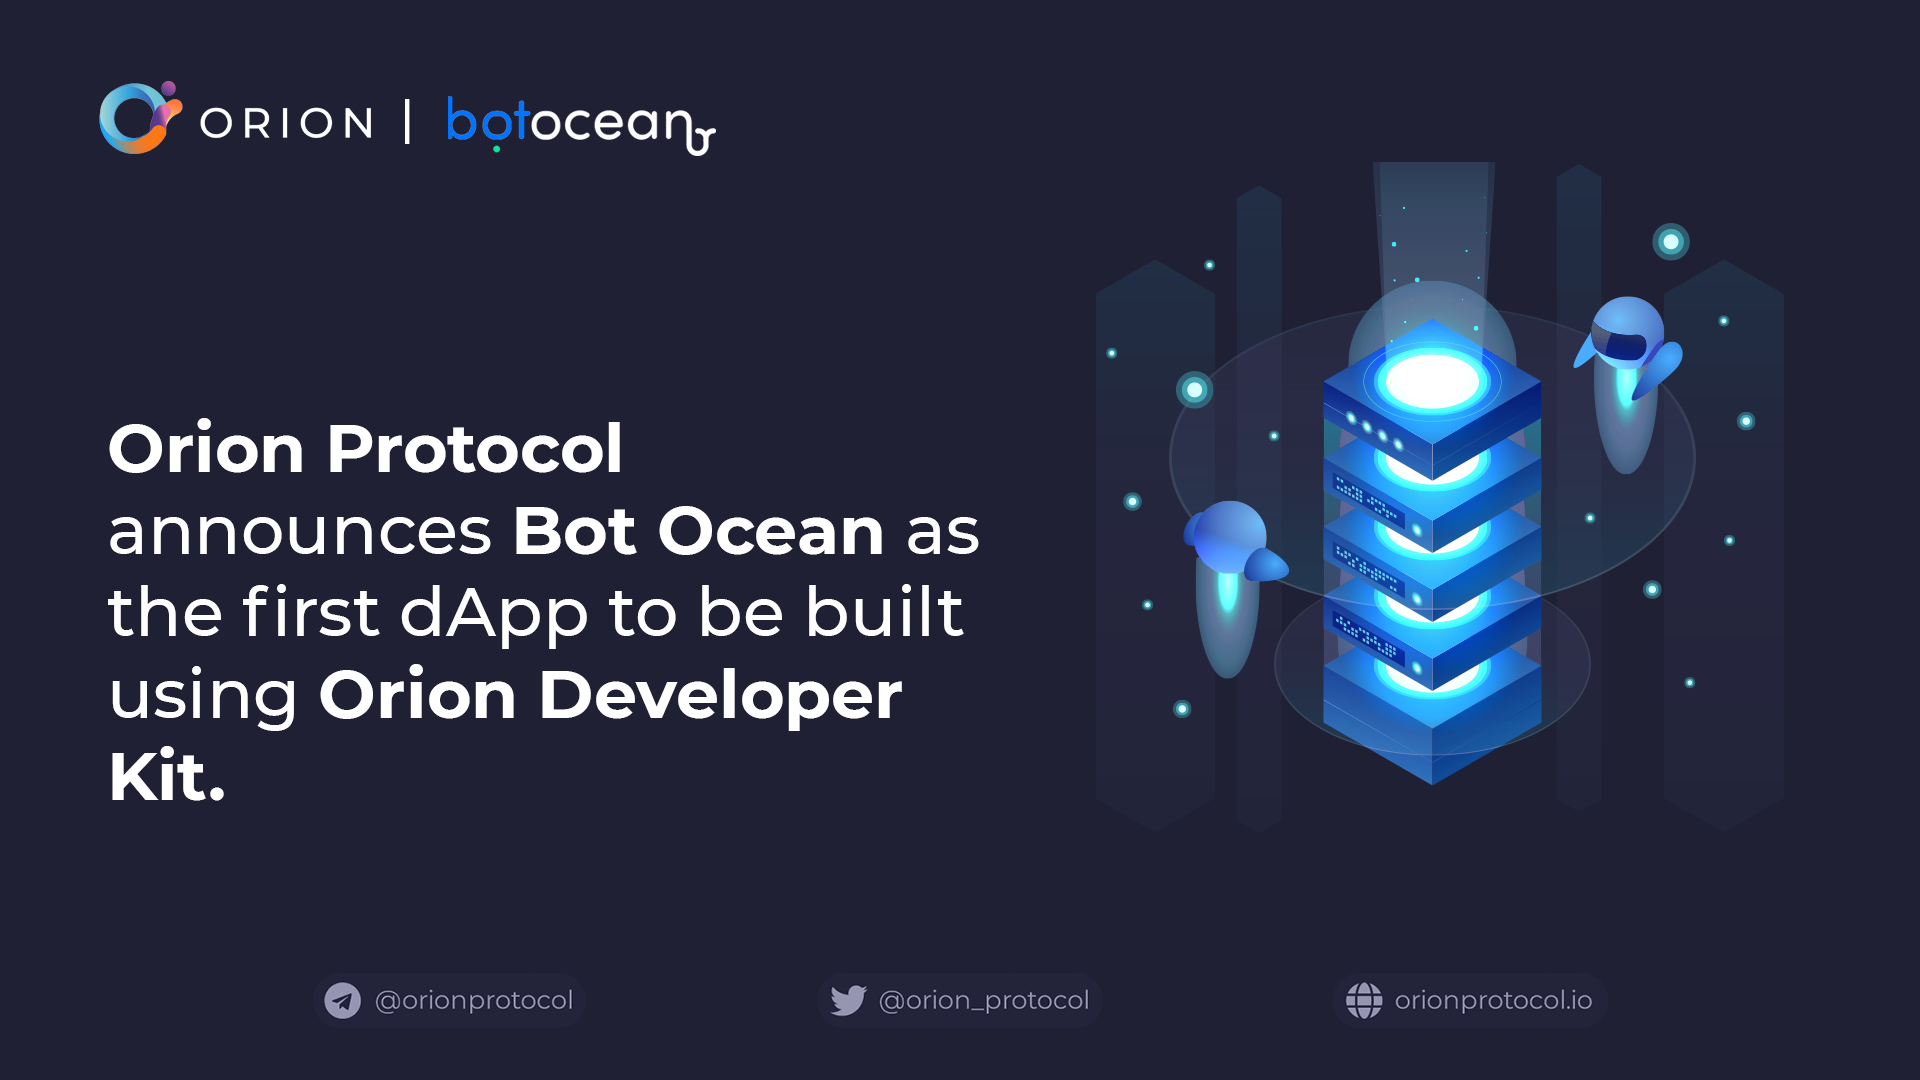 Bot Ocean: the first dApp on Orion Protocol